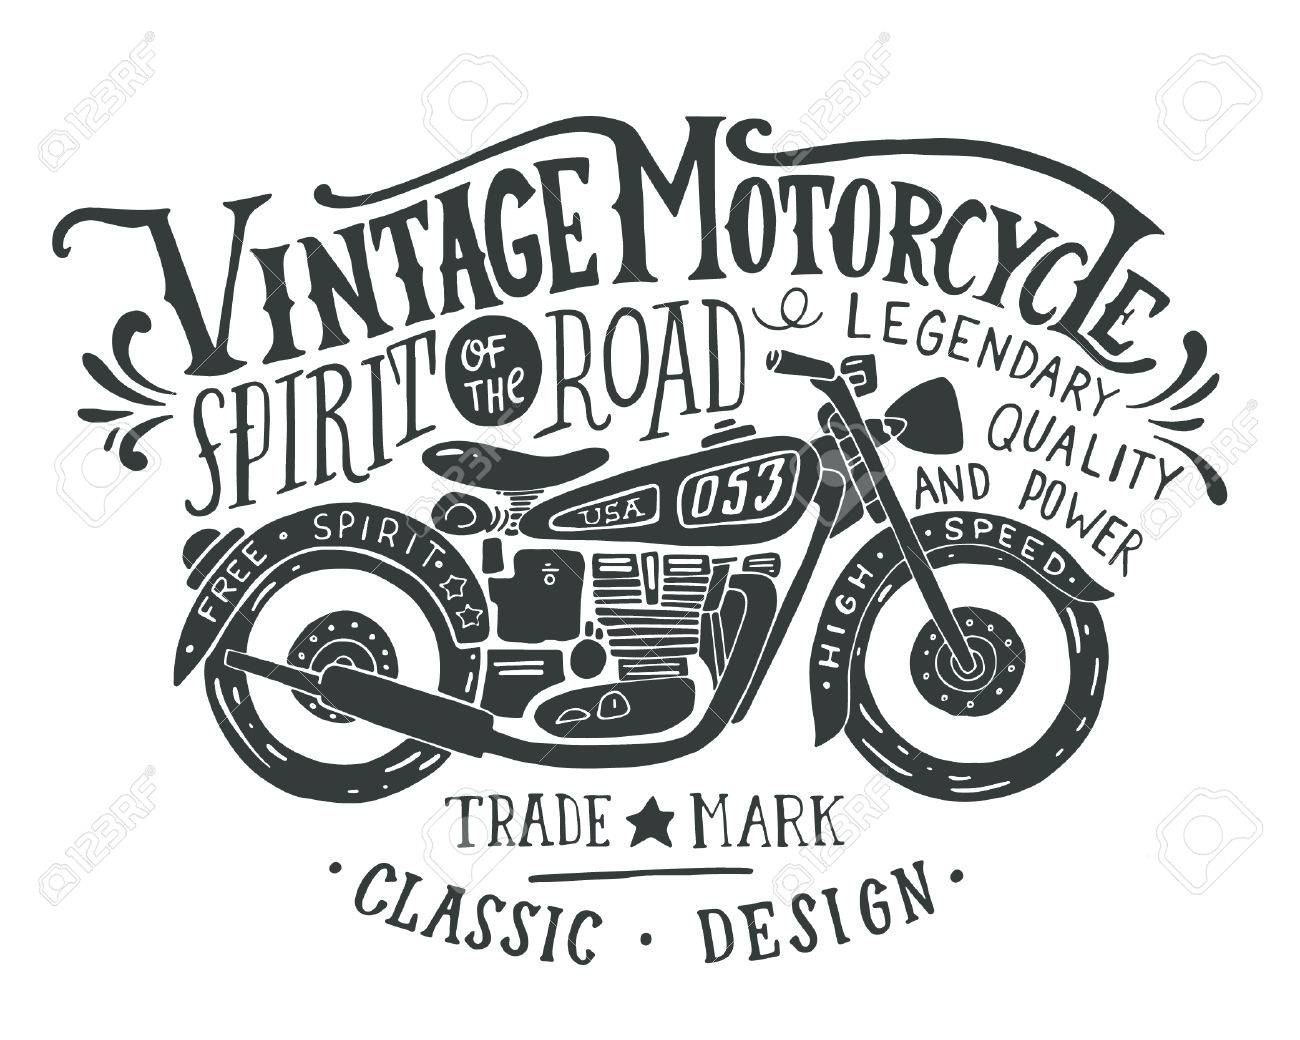 Vintage motorcycle. Hand drawn grunge vintage illustration with hand lettering and a retro bike. This illustration can be used as a print on t-shirts and bags, stationary or as a poster. - 54667555